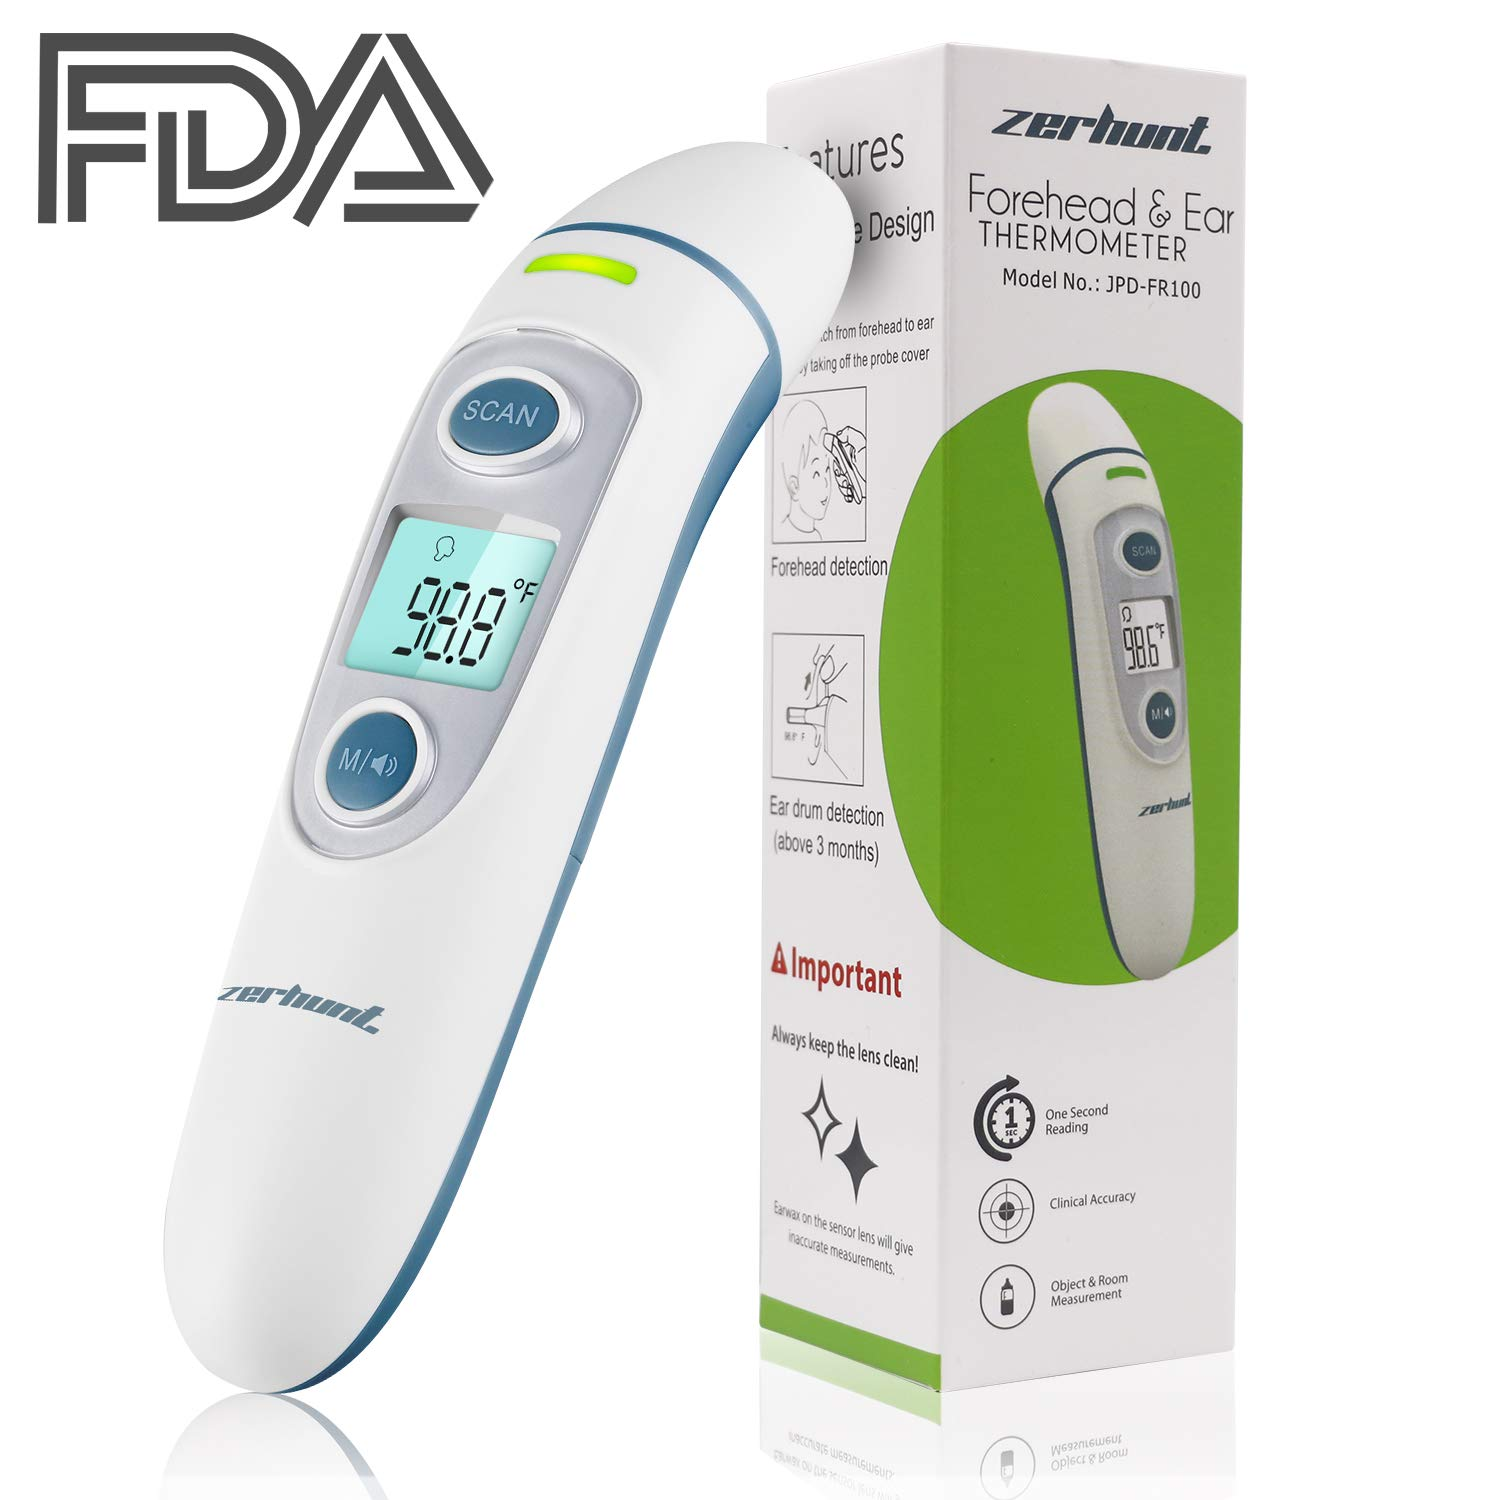 Forehead and Ear Thermometer,Zerhunt Baby Digital Fever Termometro,2018 Newest Professional Accurate Medical Temporal Infrared Thermometer for Newborn Infant Toddler Kids Adult - FDA & CE Approved